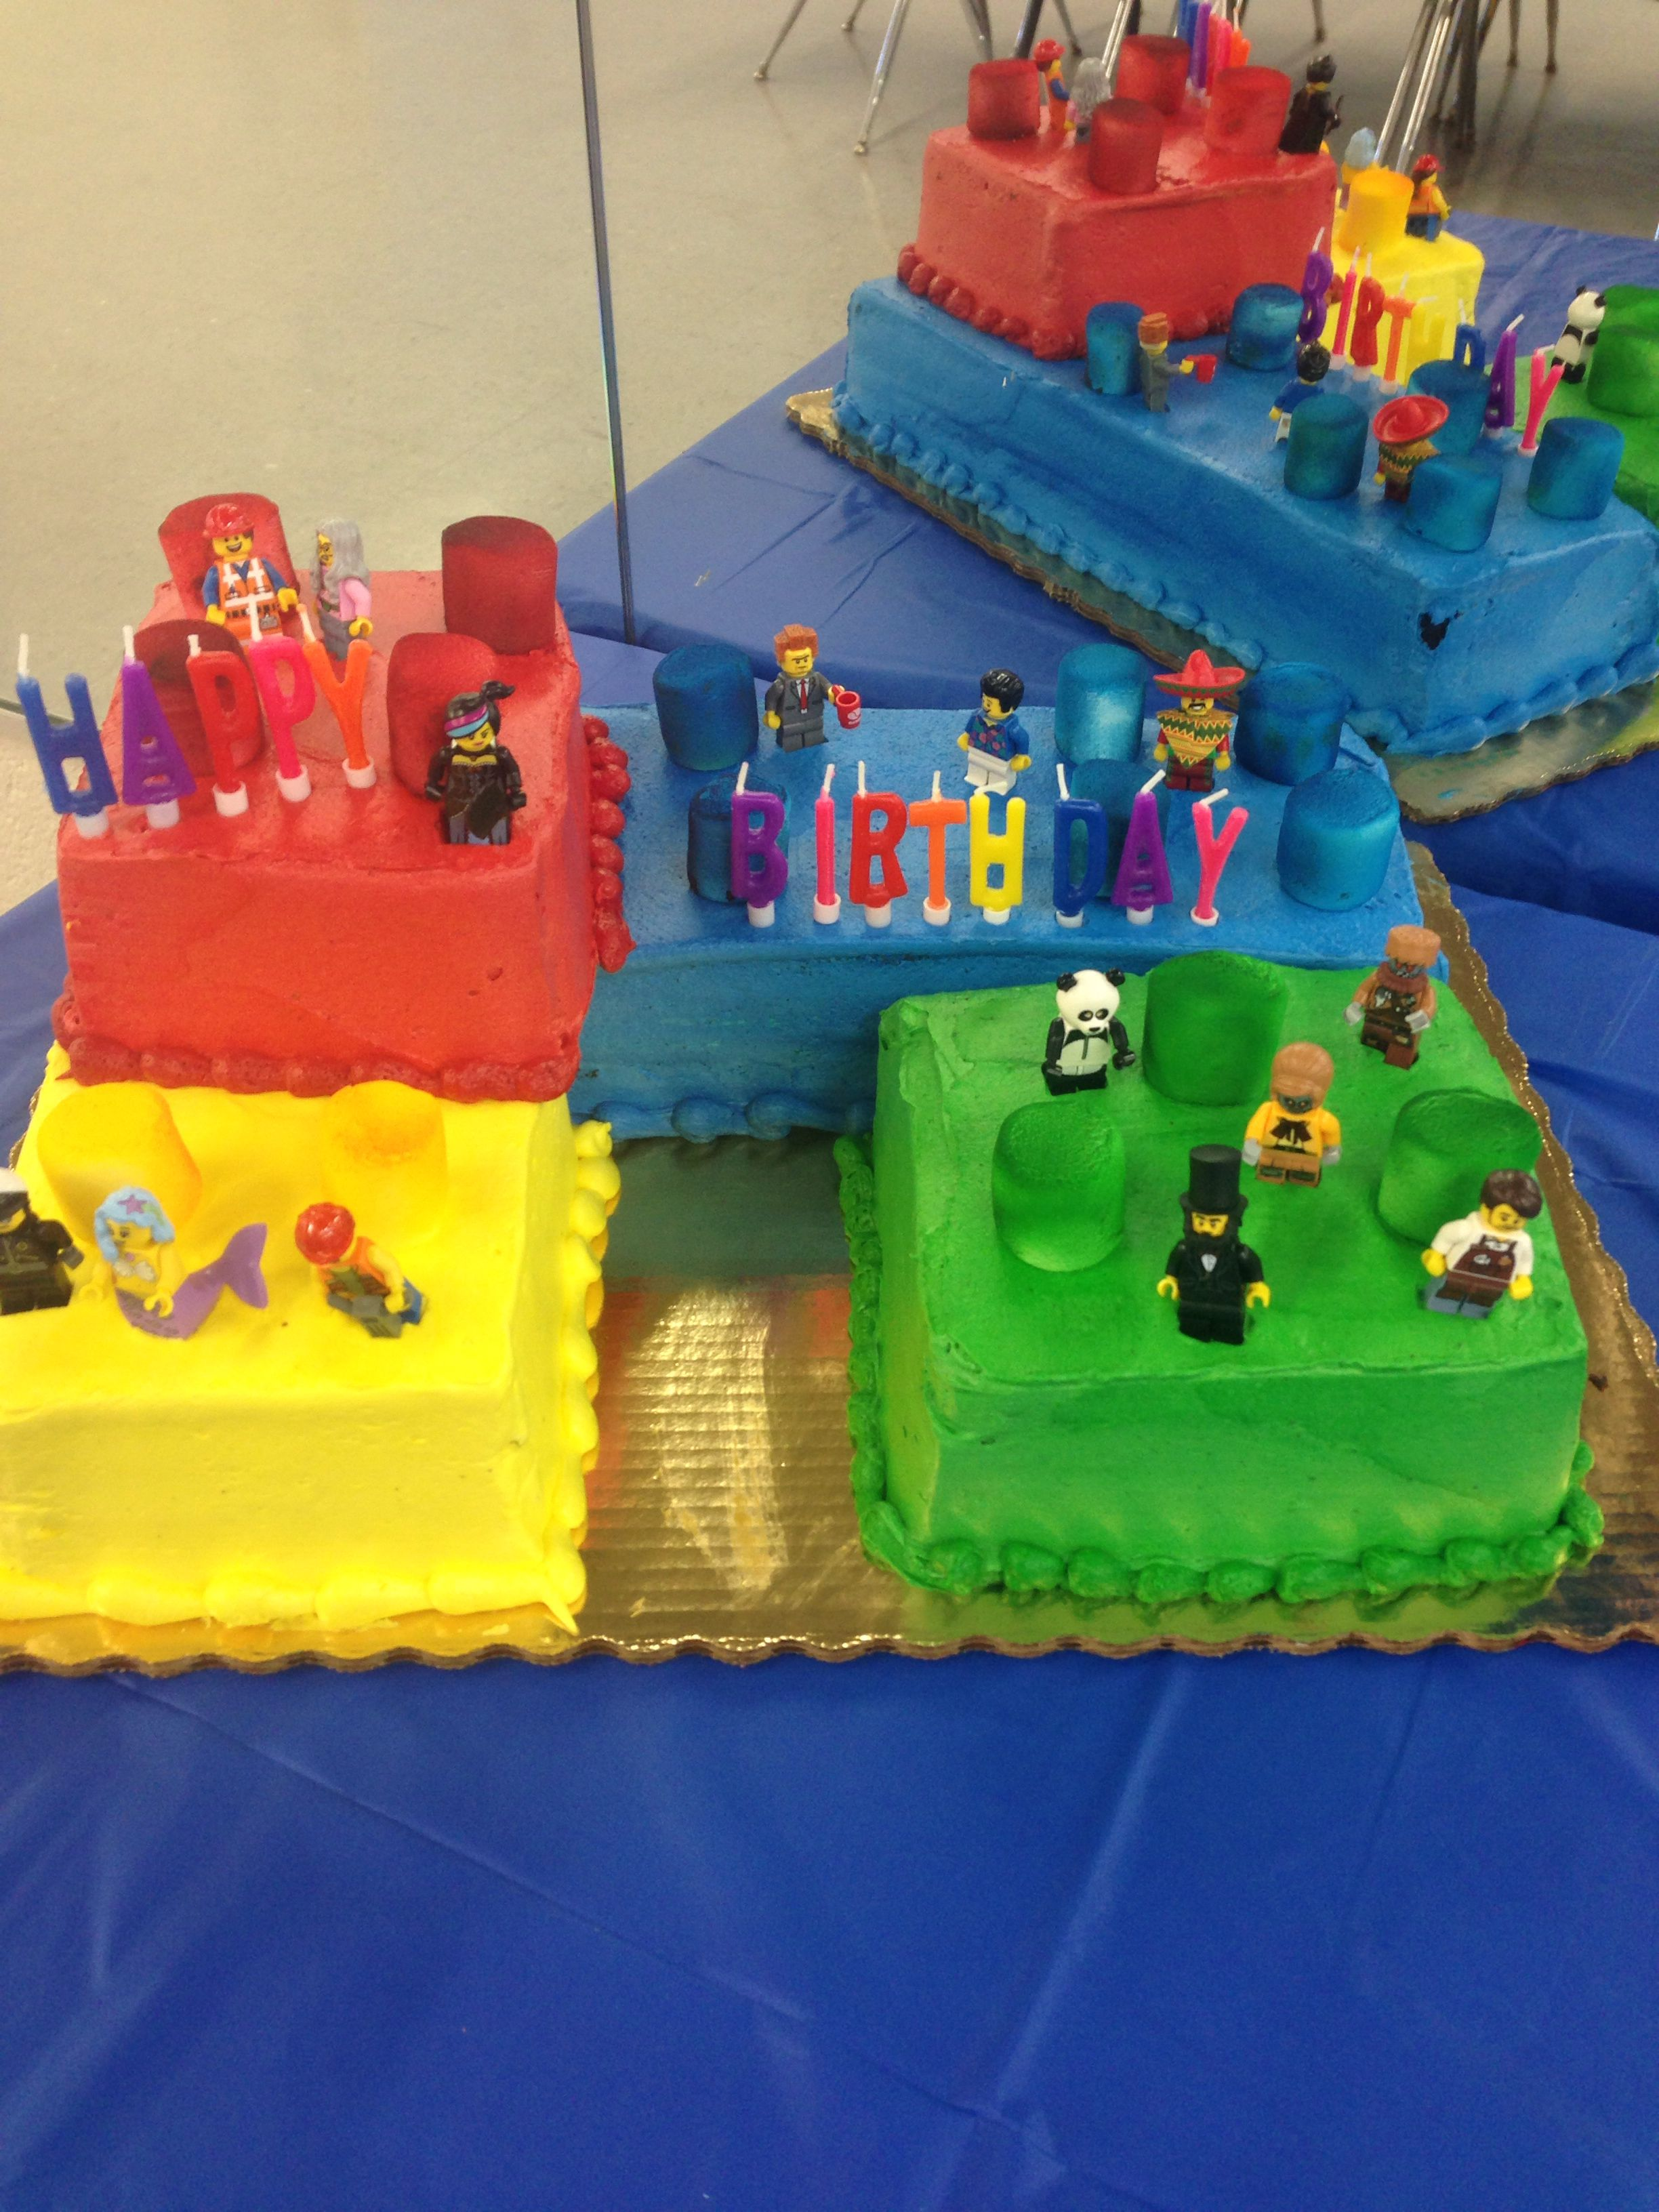 Cake from publix cake desserts lego party